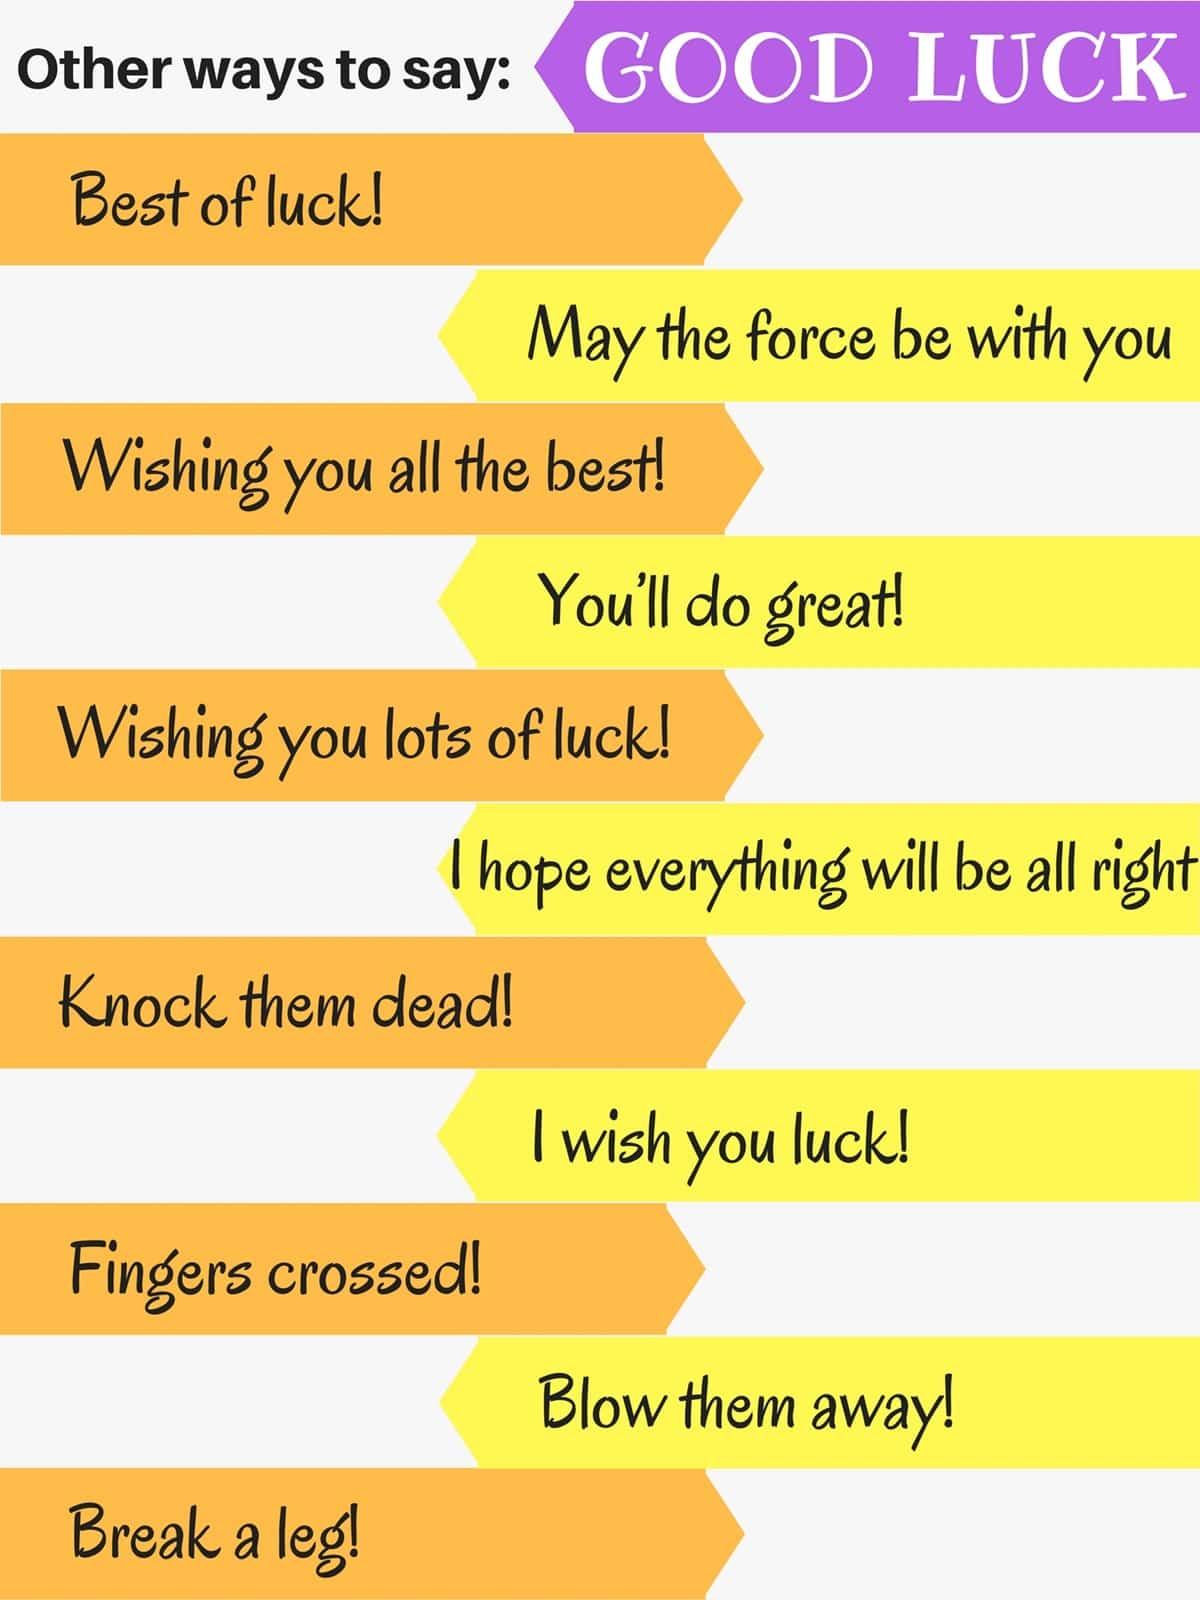 Other Ways to Say: Good luck